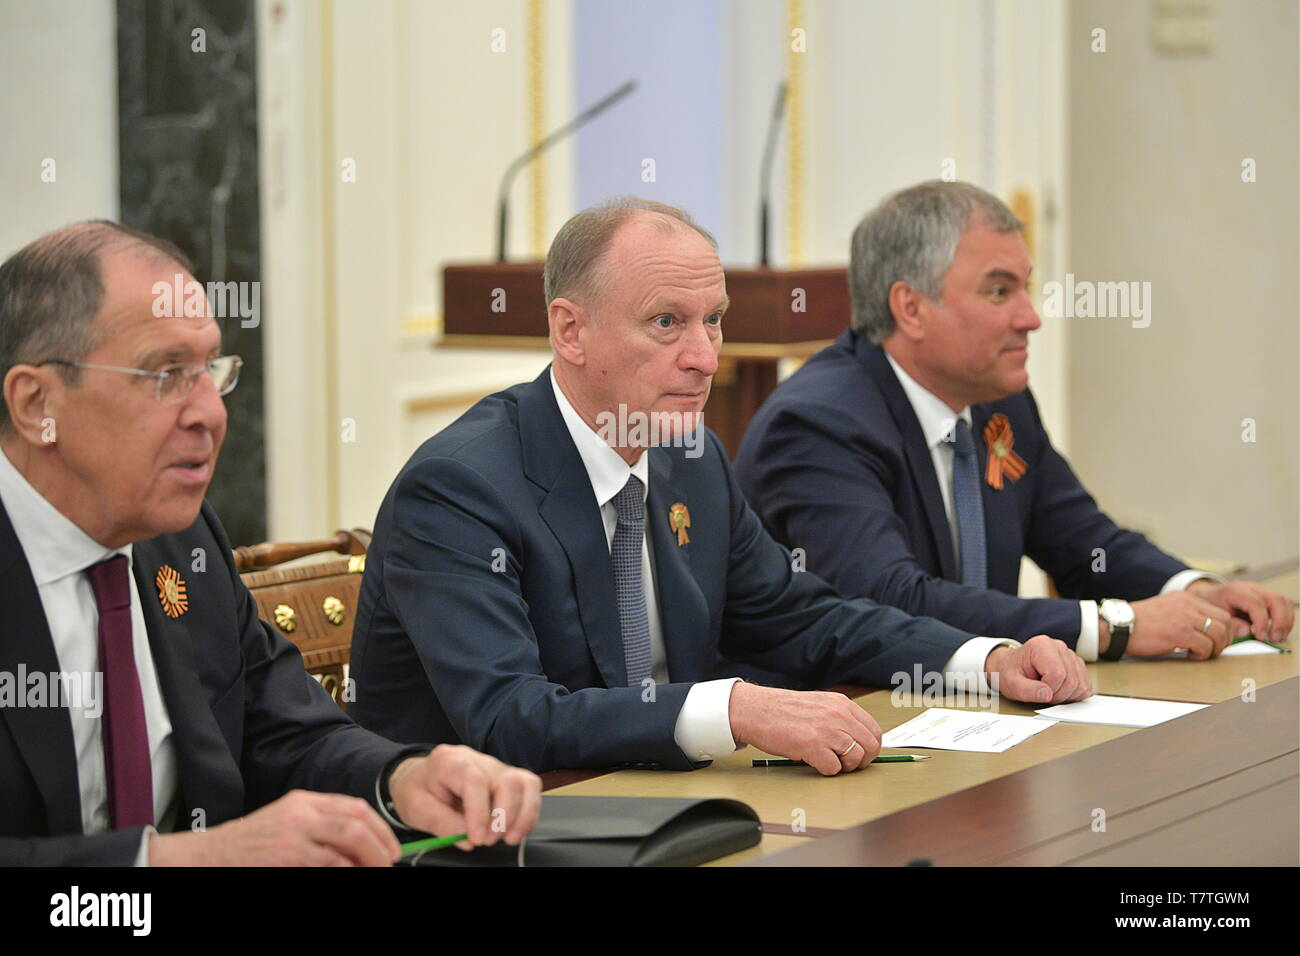 Moscow, Russia. 09th May, 2019. MOSCOW, RUSSIA - MAY 9, 2019: Russia's Foreign Minister Sergei Lavrov, Security Council Secretary Nikolai Patrushev and State Duma Chairman Vyacheslav Volodin (L-R) ahead of a meeting between Russia's President Vladimir Putin and permanent members of the Russian Security Council at the Moscow Kremlin. Alexei Druzhinin/Russian Presidential Press and Information Office/TASS Credit: ITAR-TASS News Agency/Alamy Live News - Stock Image